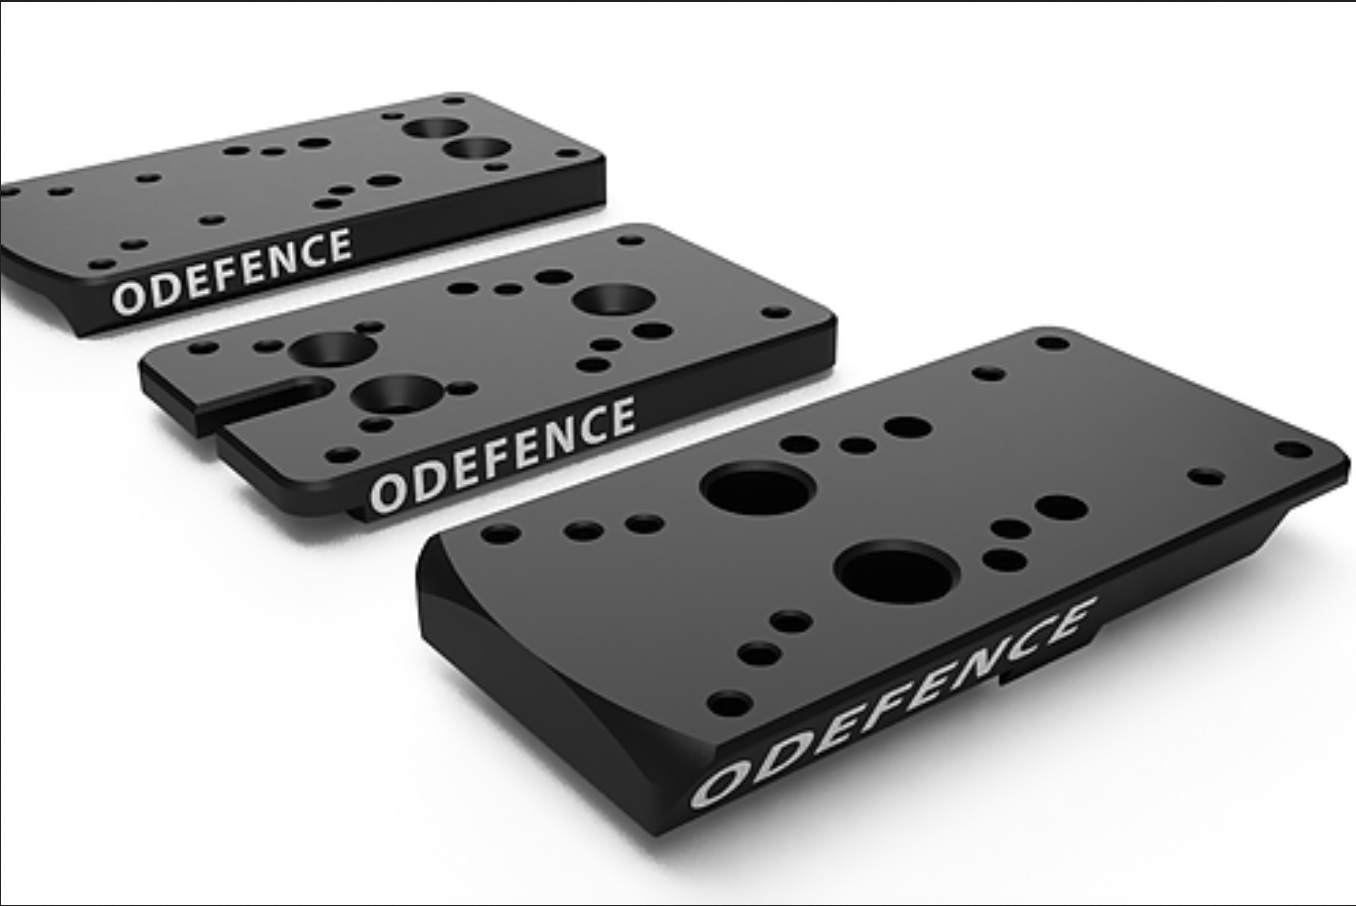 O Defence Universal Red Dot Adapter  plate for Glock 17/19. Compatable ACOG/Vortex/Shield/Burris.|URDA Glock 17/19